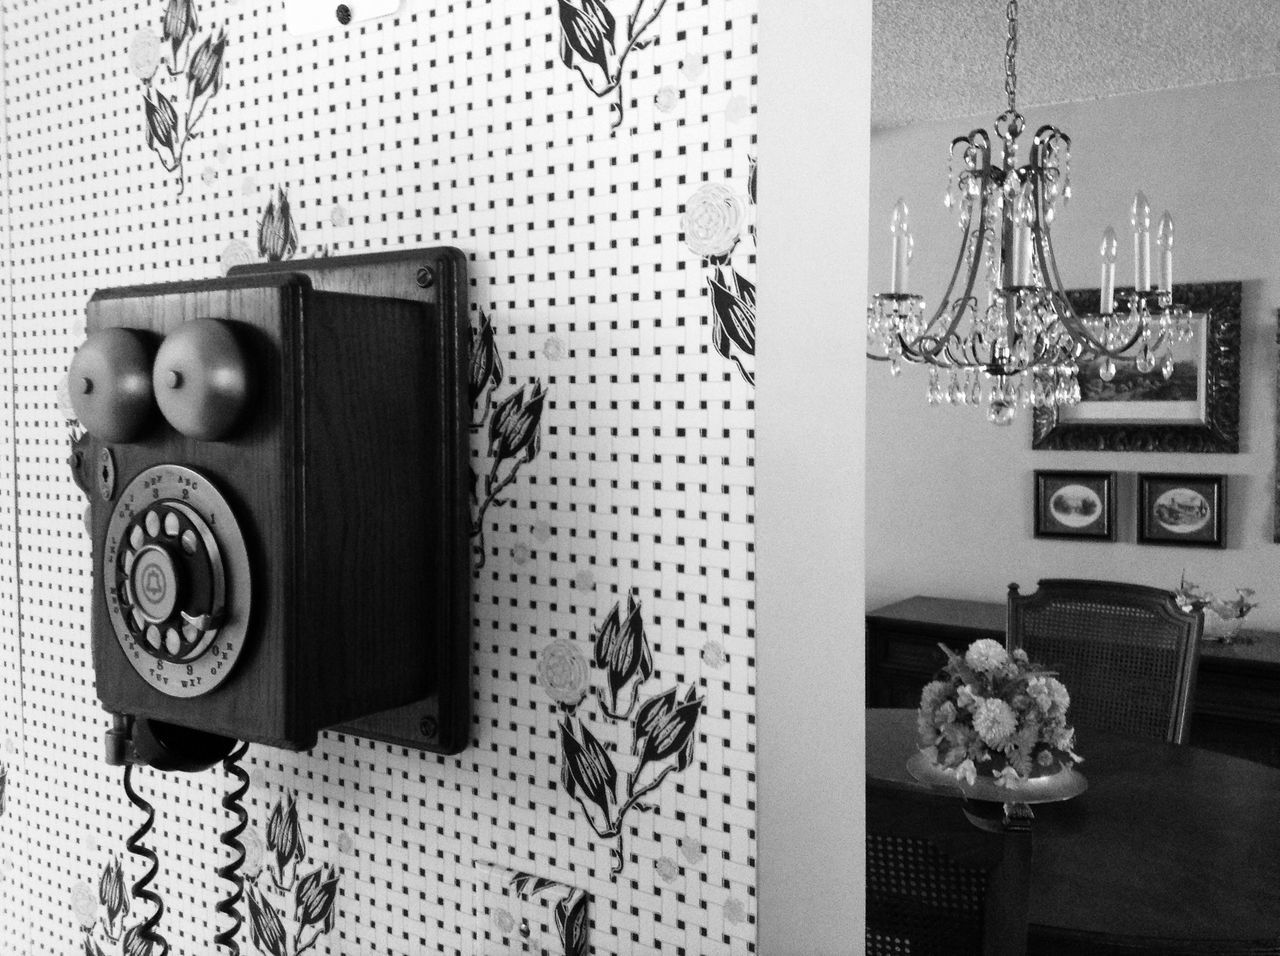 Antique Bnw_friday_eyeemchallenge Bnw Blackandwhite Telephone Black And White Black & White Rule Of Thirds